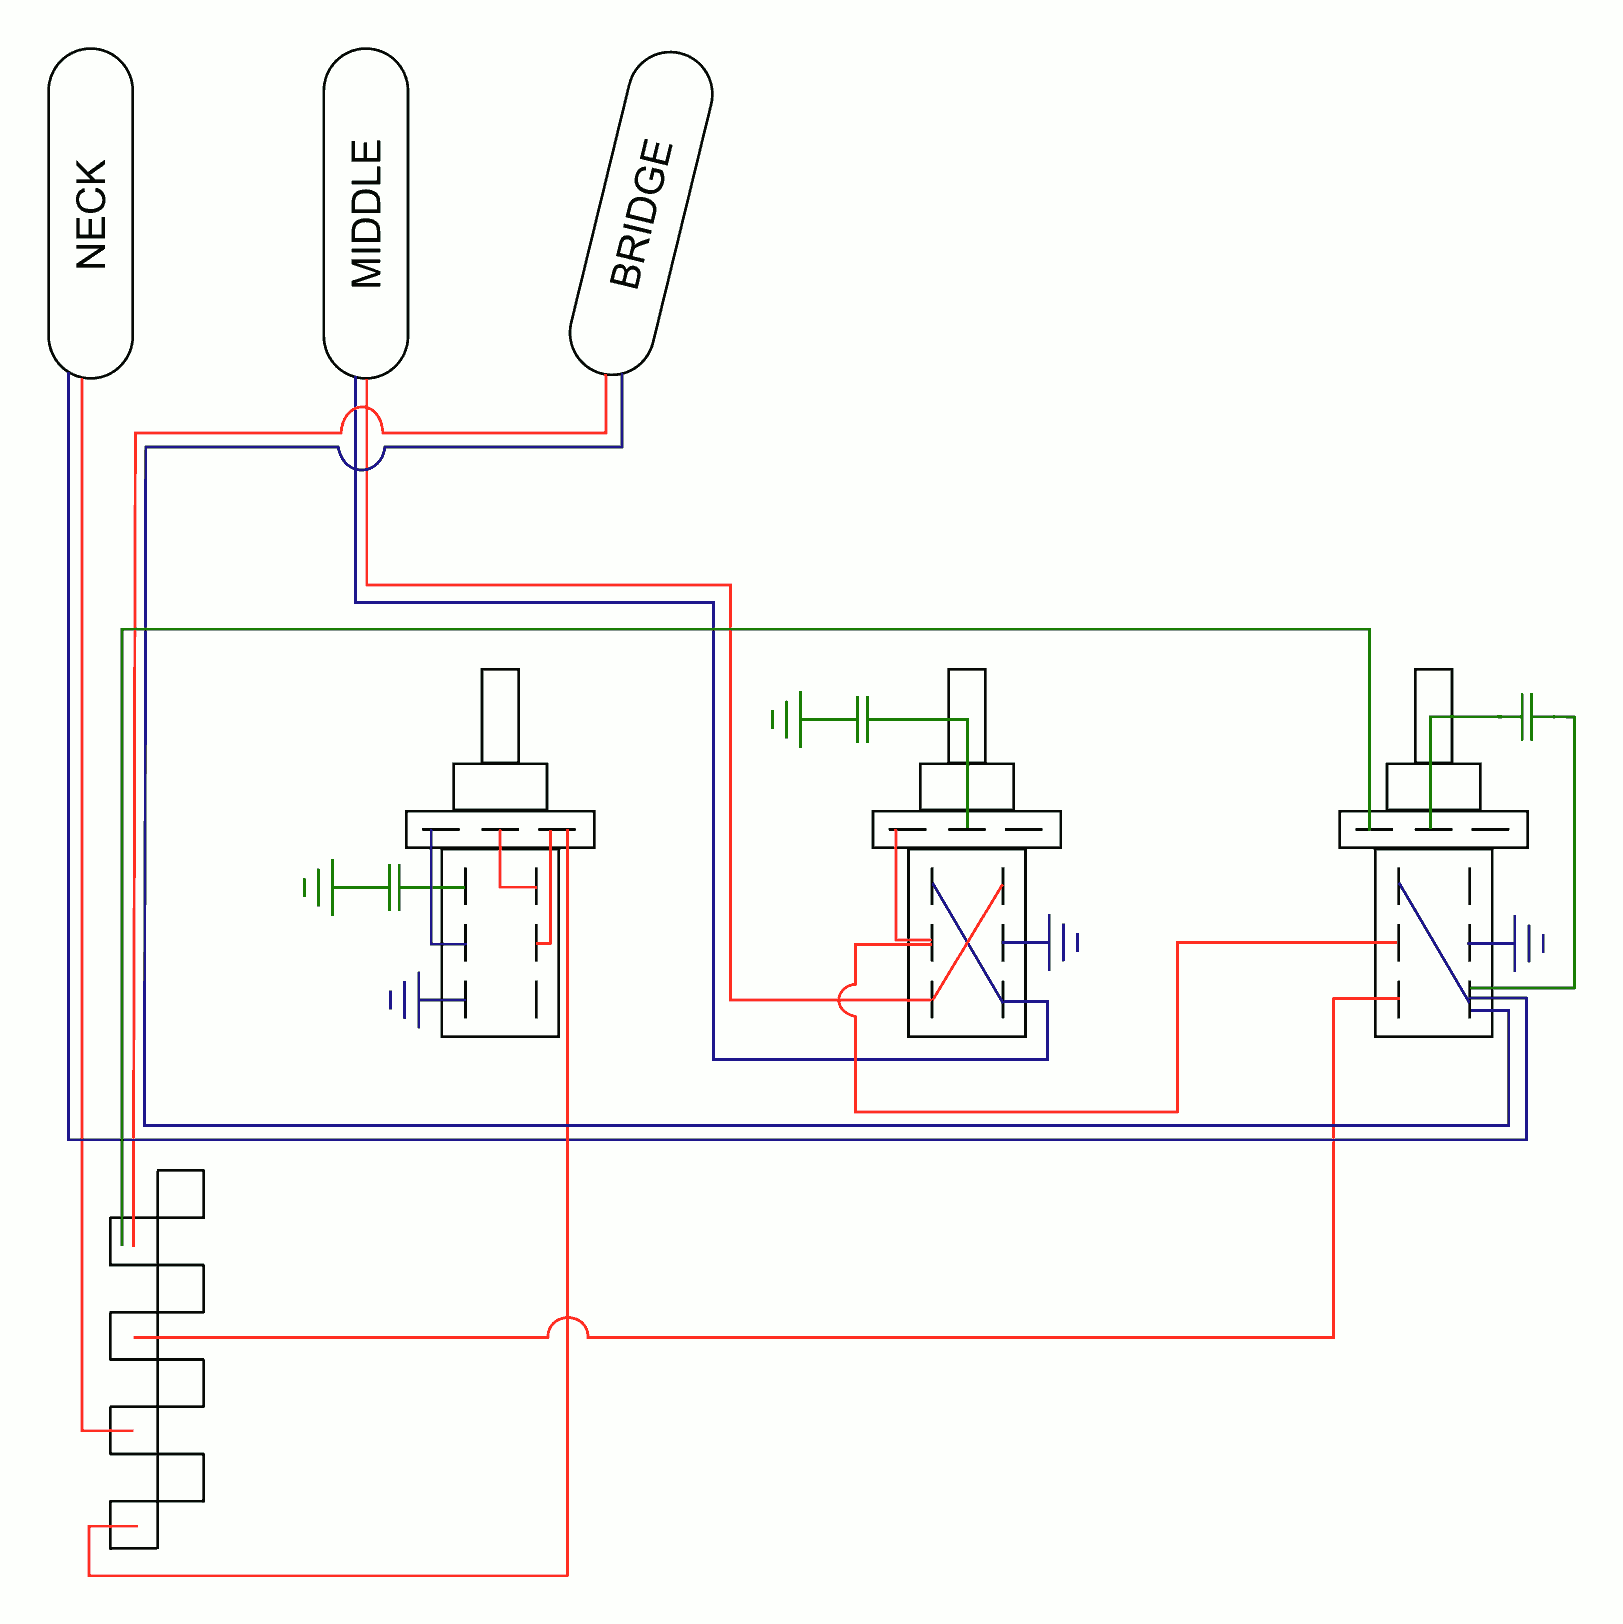 hight resolution of strat wiring you will get pretty cool tones playing with knobs i really like stronger in phase series tones especially with middle tone down and the